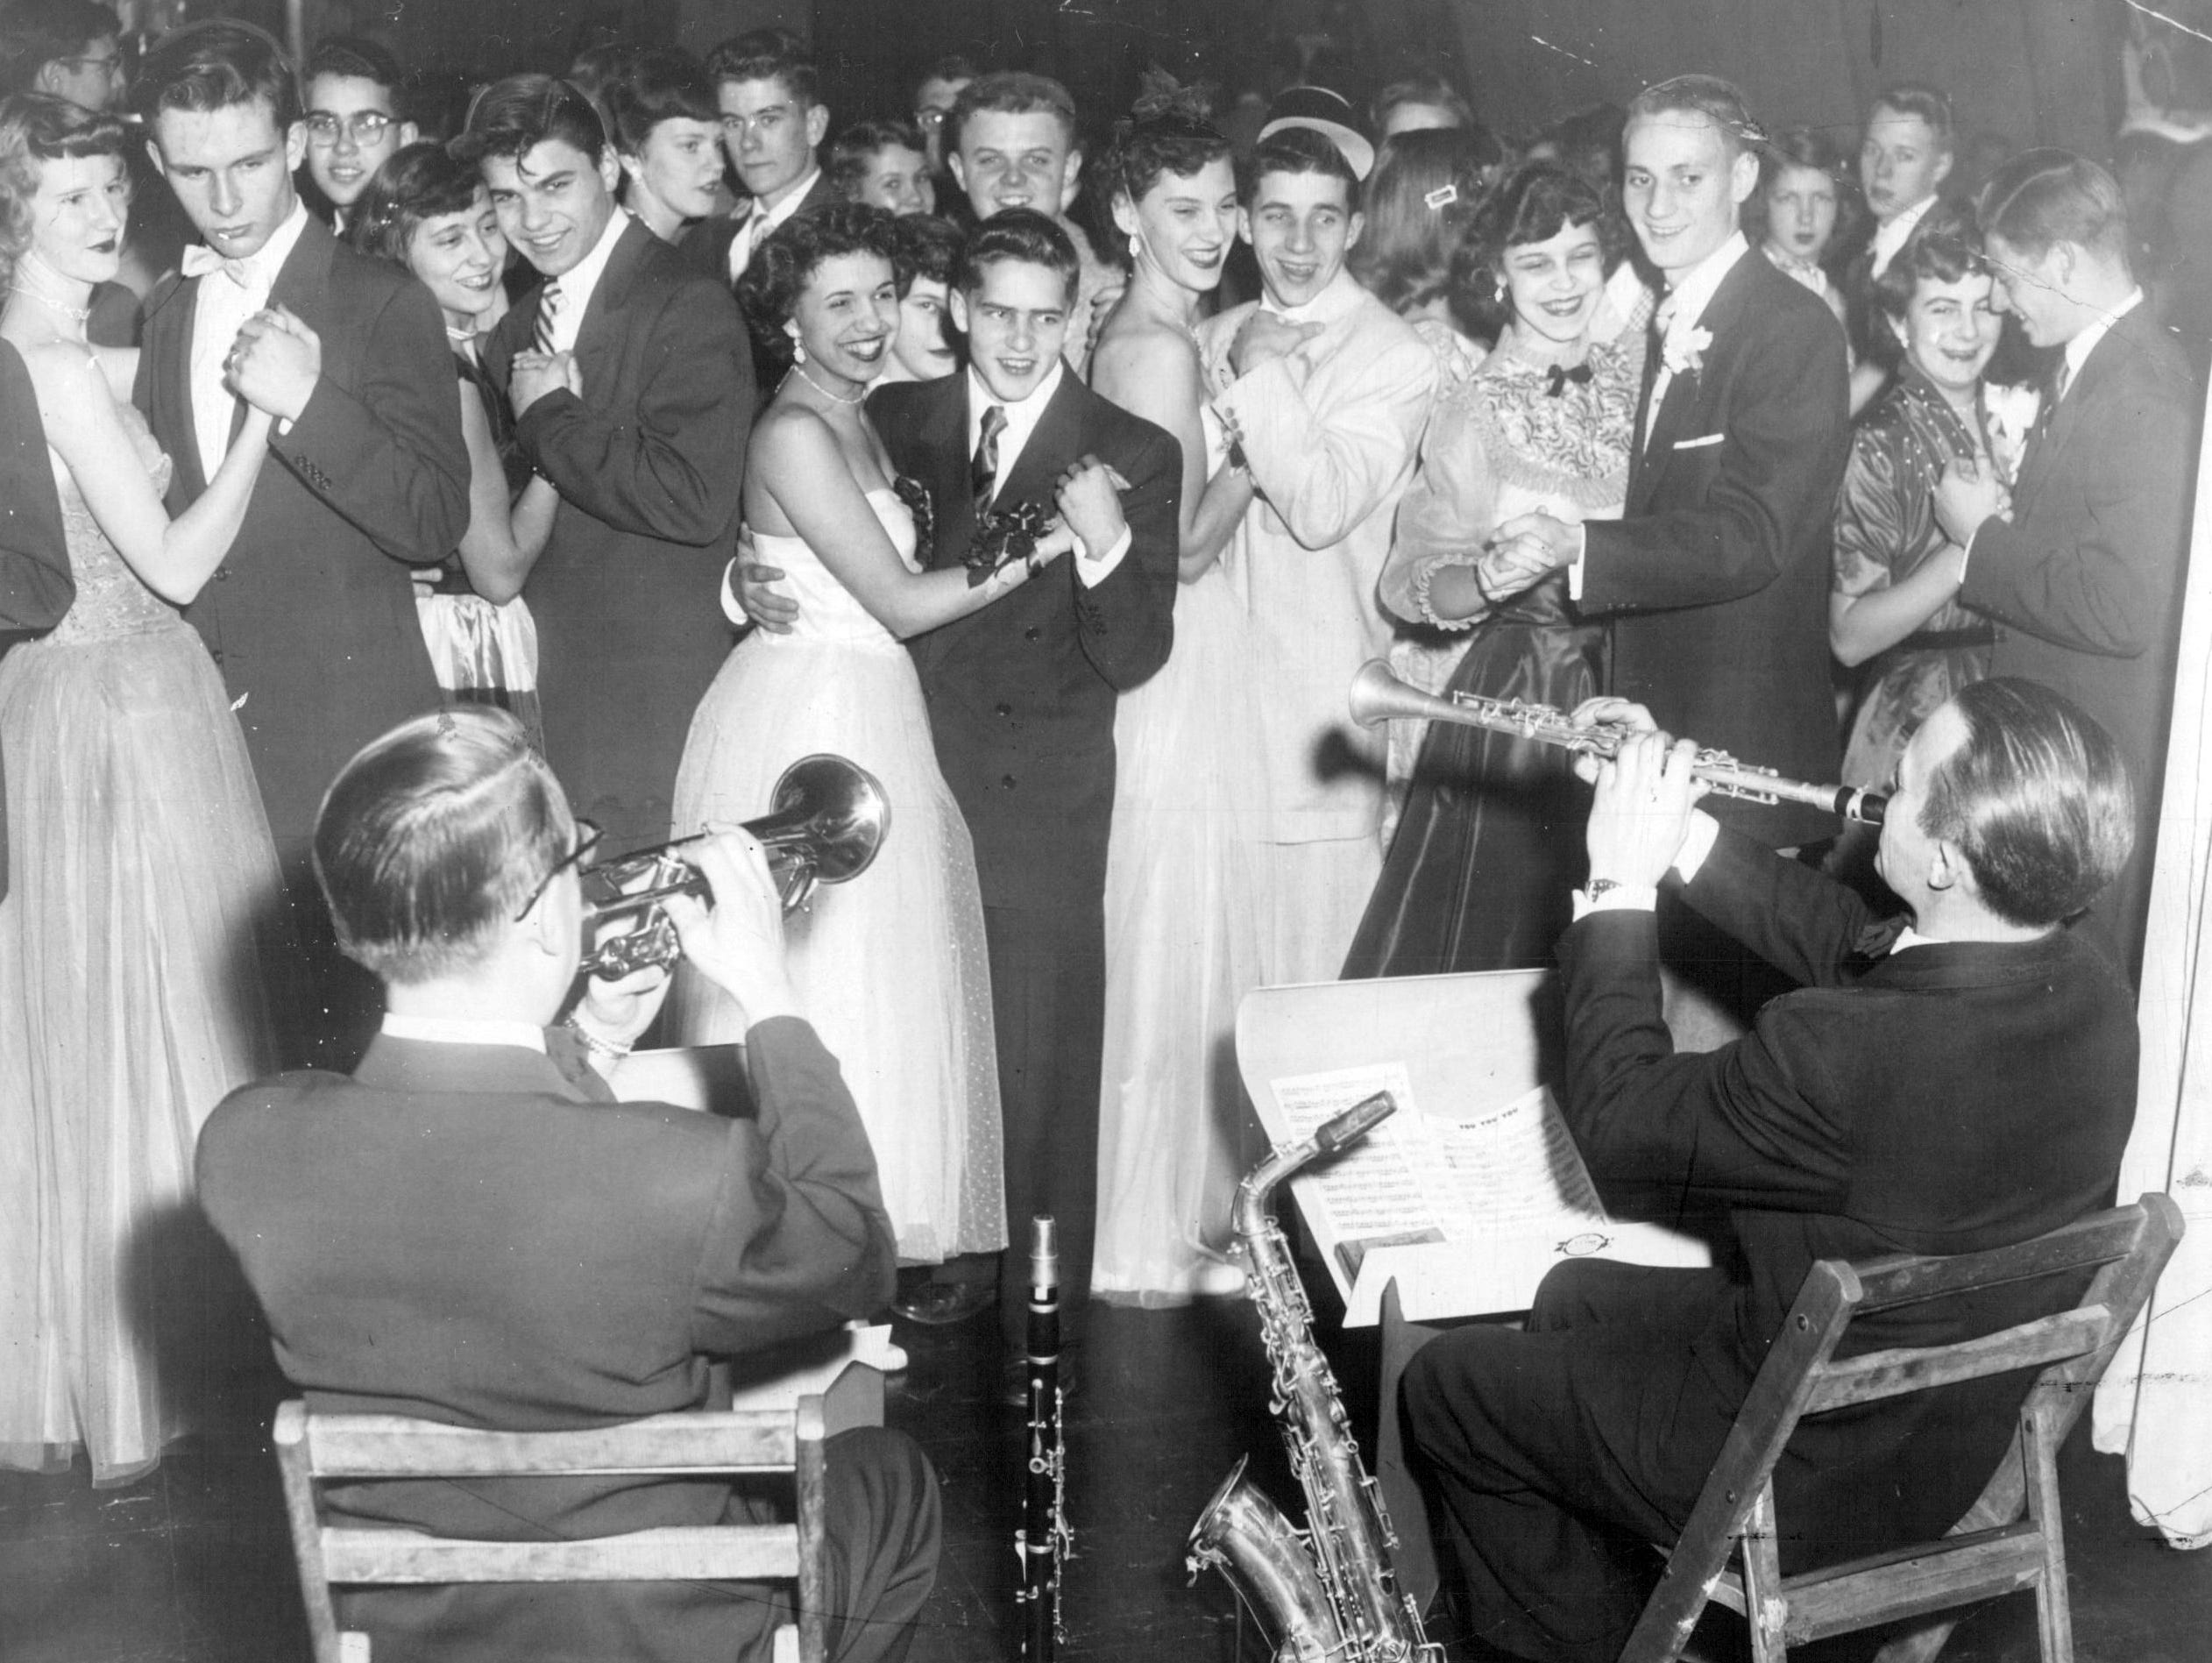 his group says farewell to 1953 and hello to 1954 during a New Year's Eve dance at The Barn, a Gannett